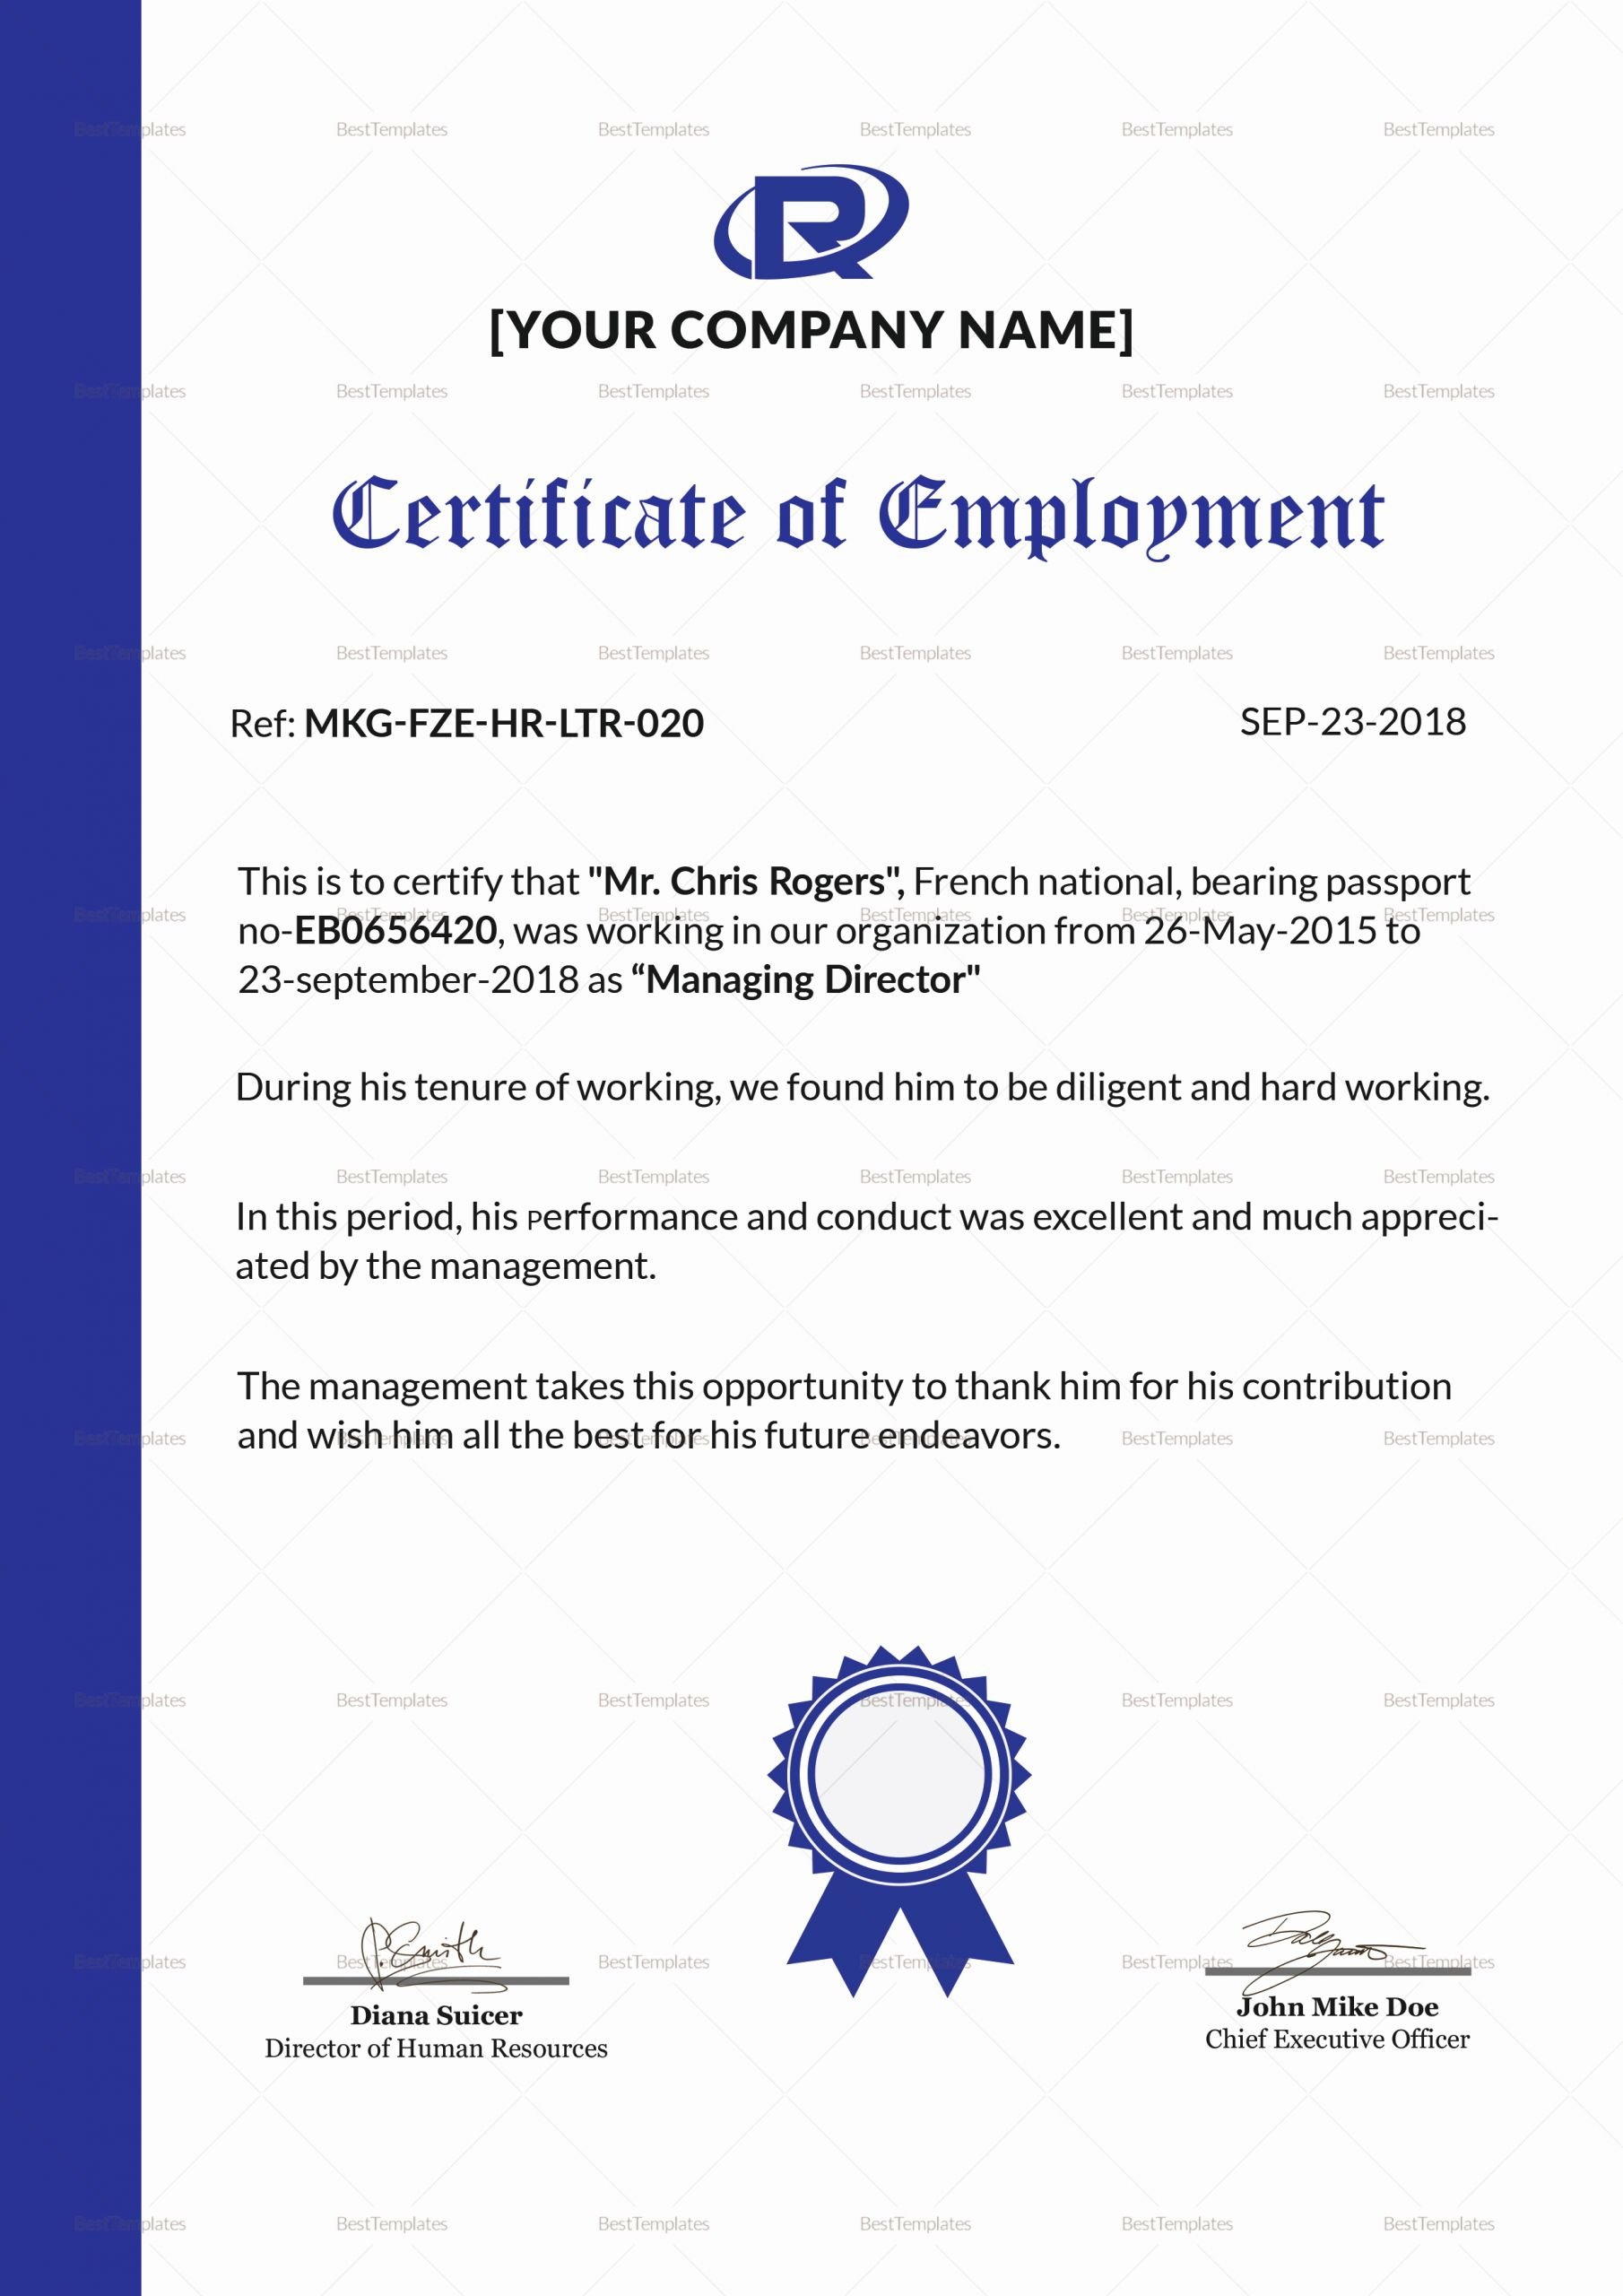 Sample Certificate Of Employment Elegant Excellent Employment Certificate Design Template In Psd Word